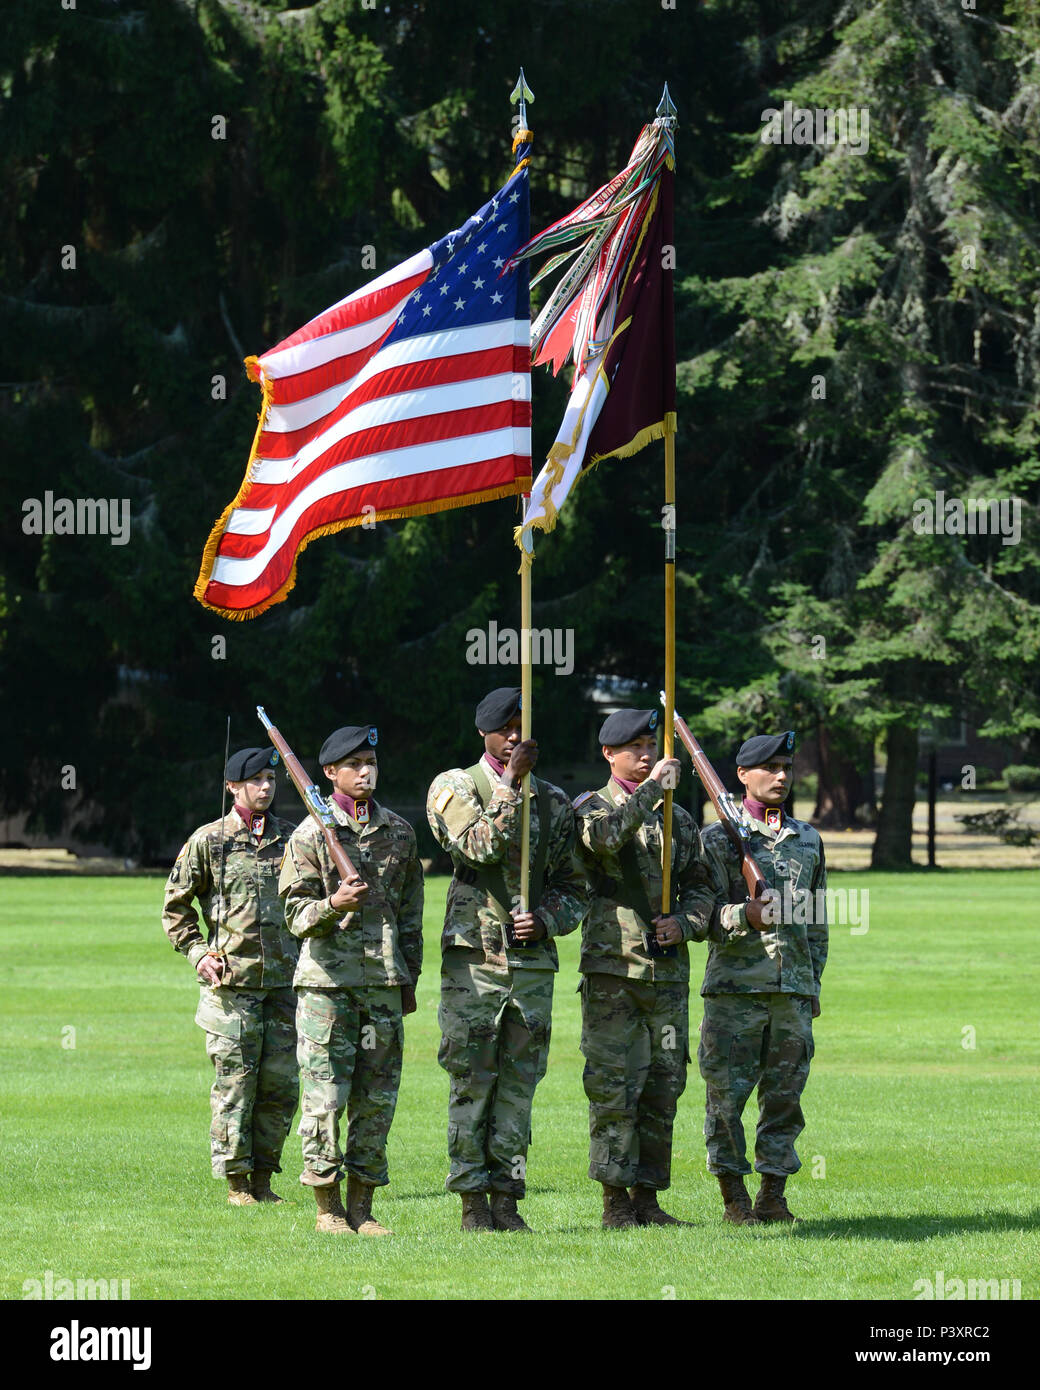 62nd Medical Brigade Color Guard stands at attention during the Change of Command Ceremony. - Stock Image